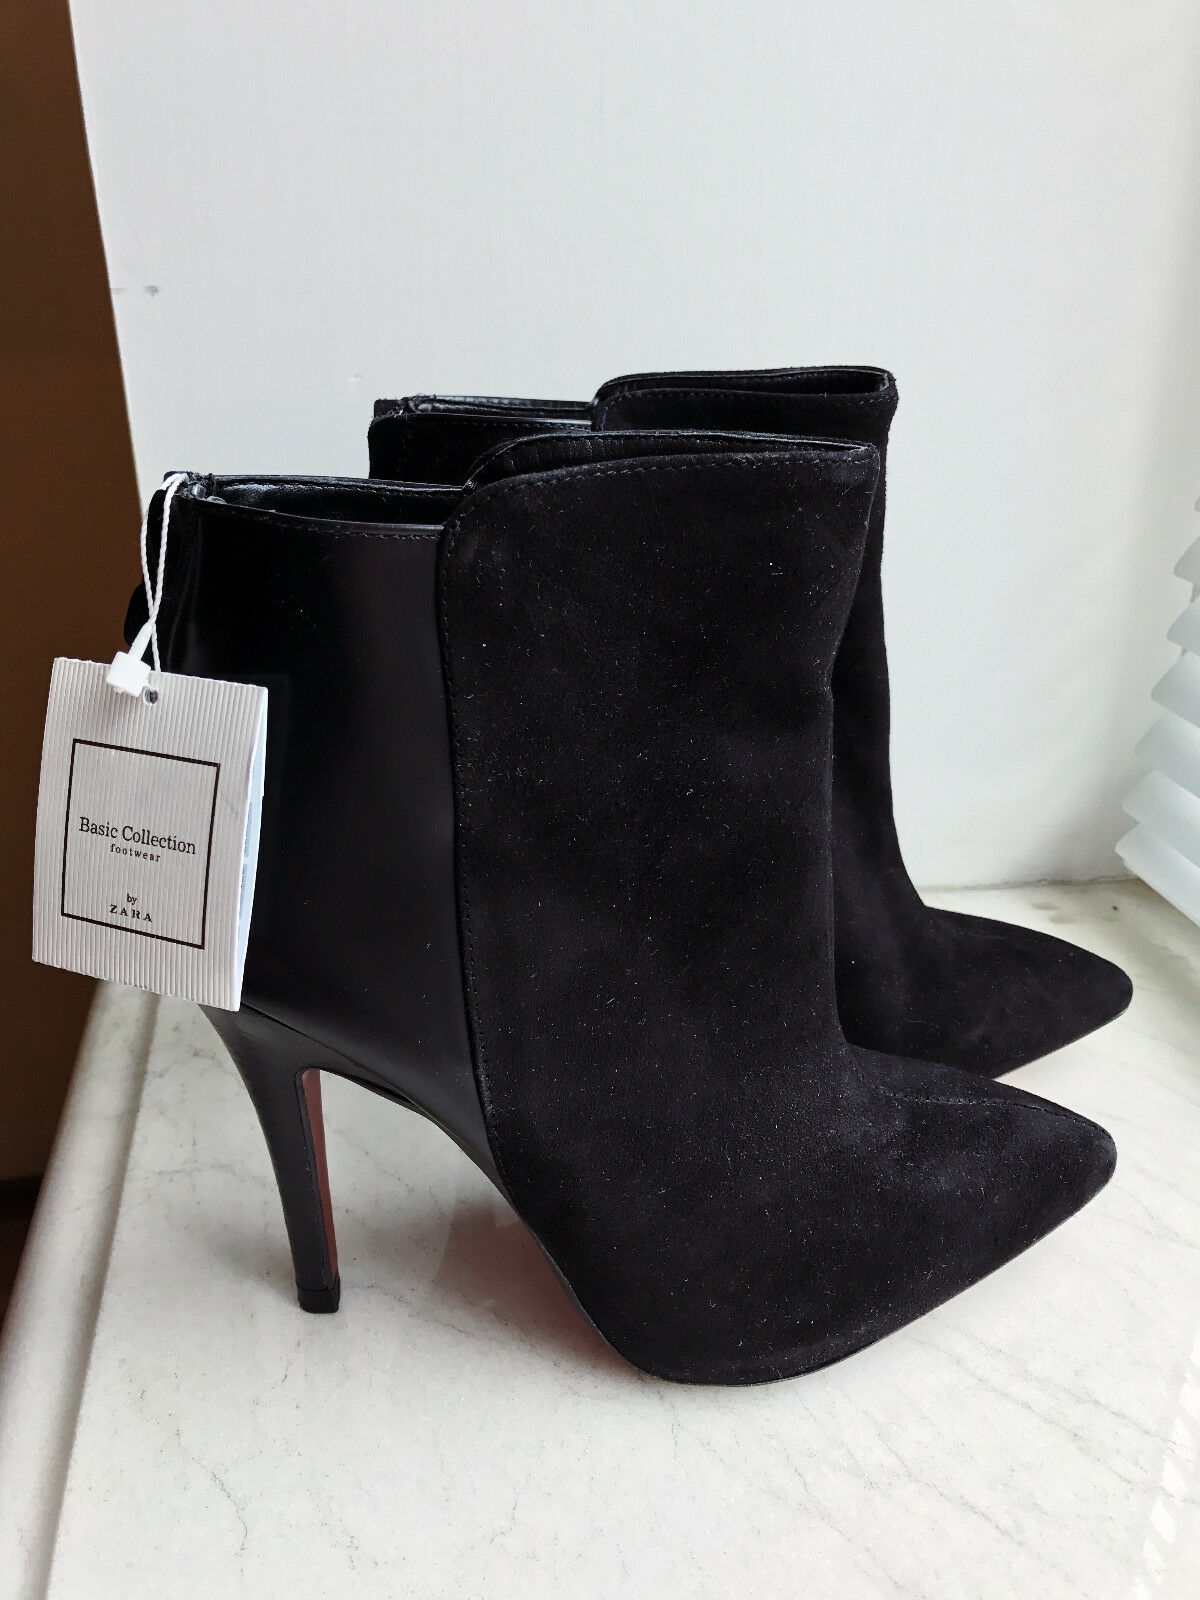 ZARA pointed heeled booties EU39 US9 UK6 NEW W/TAGS real leather